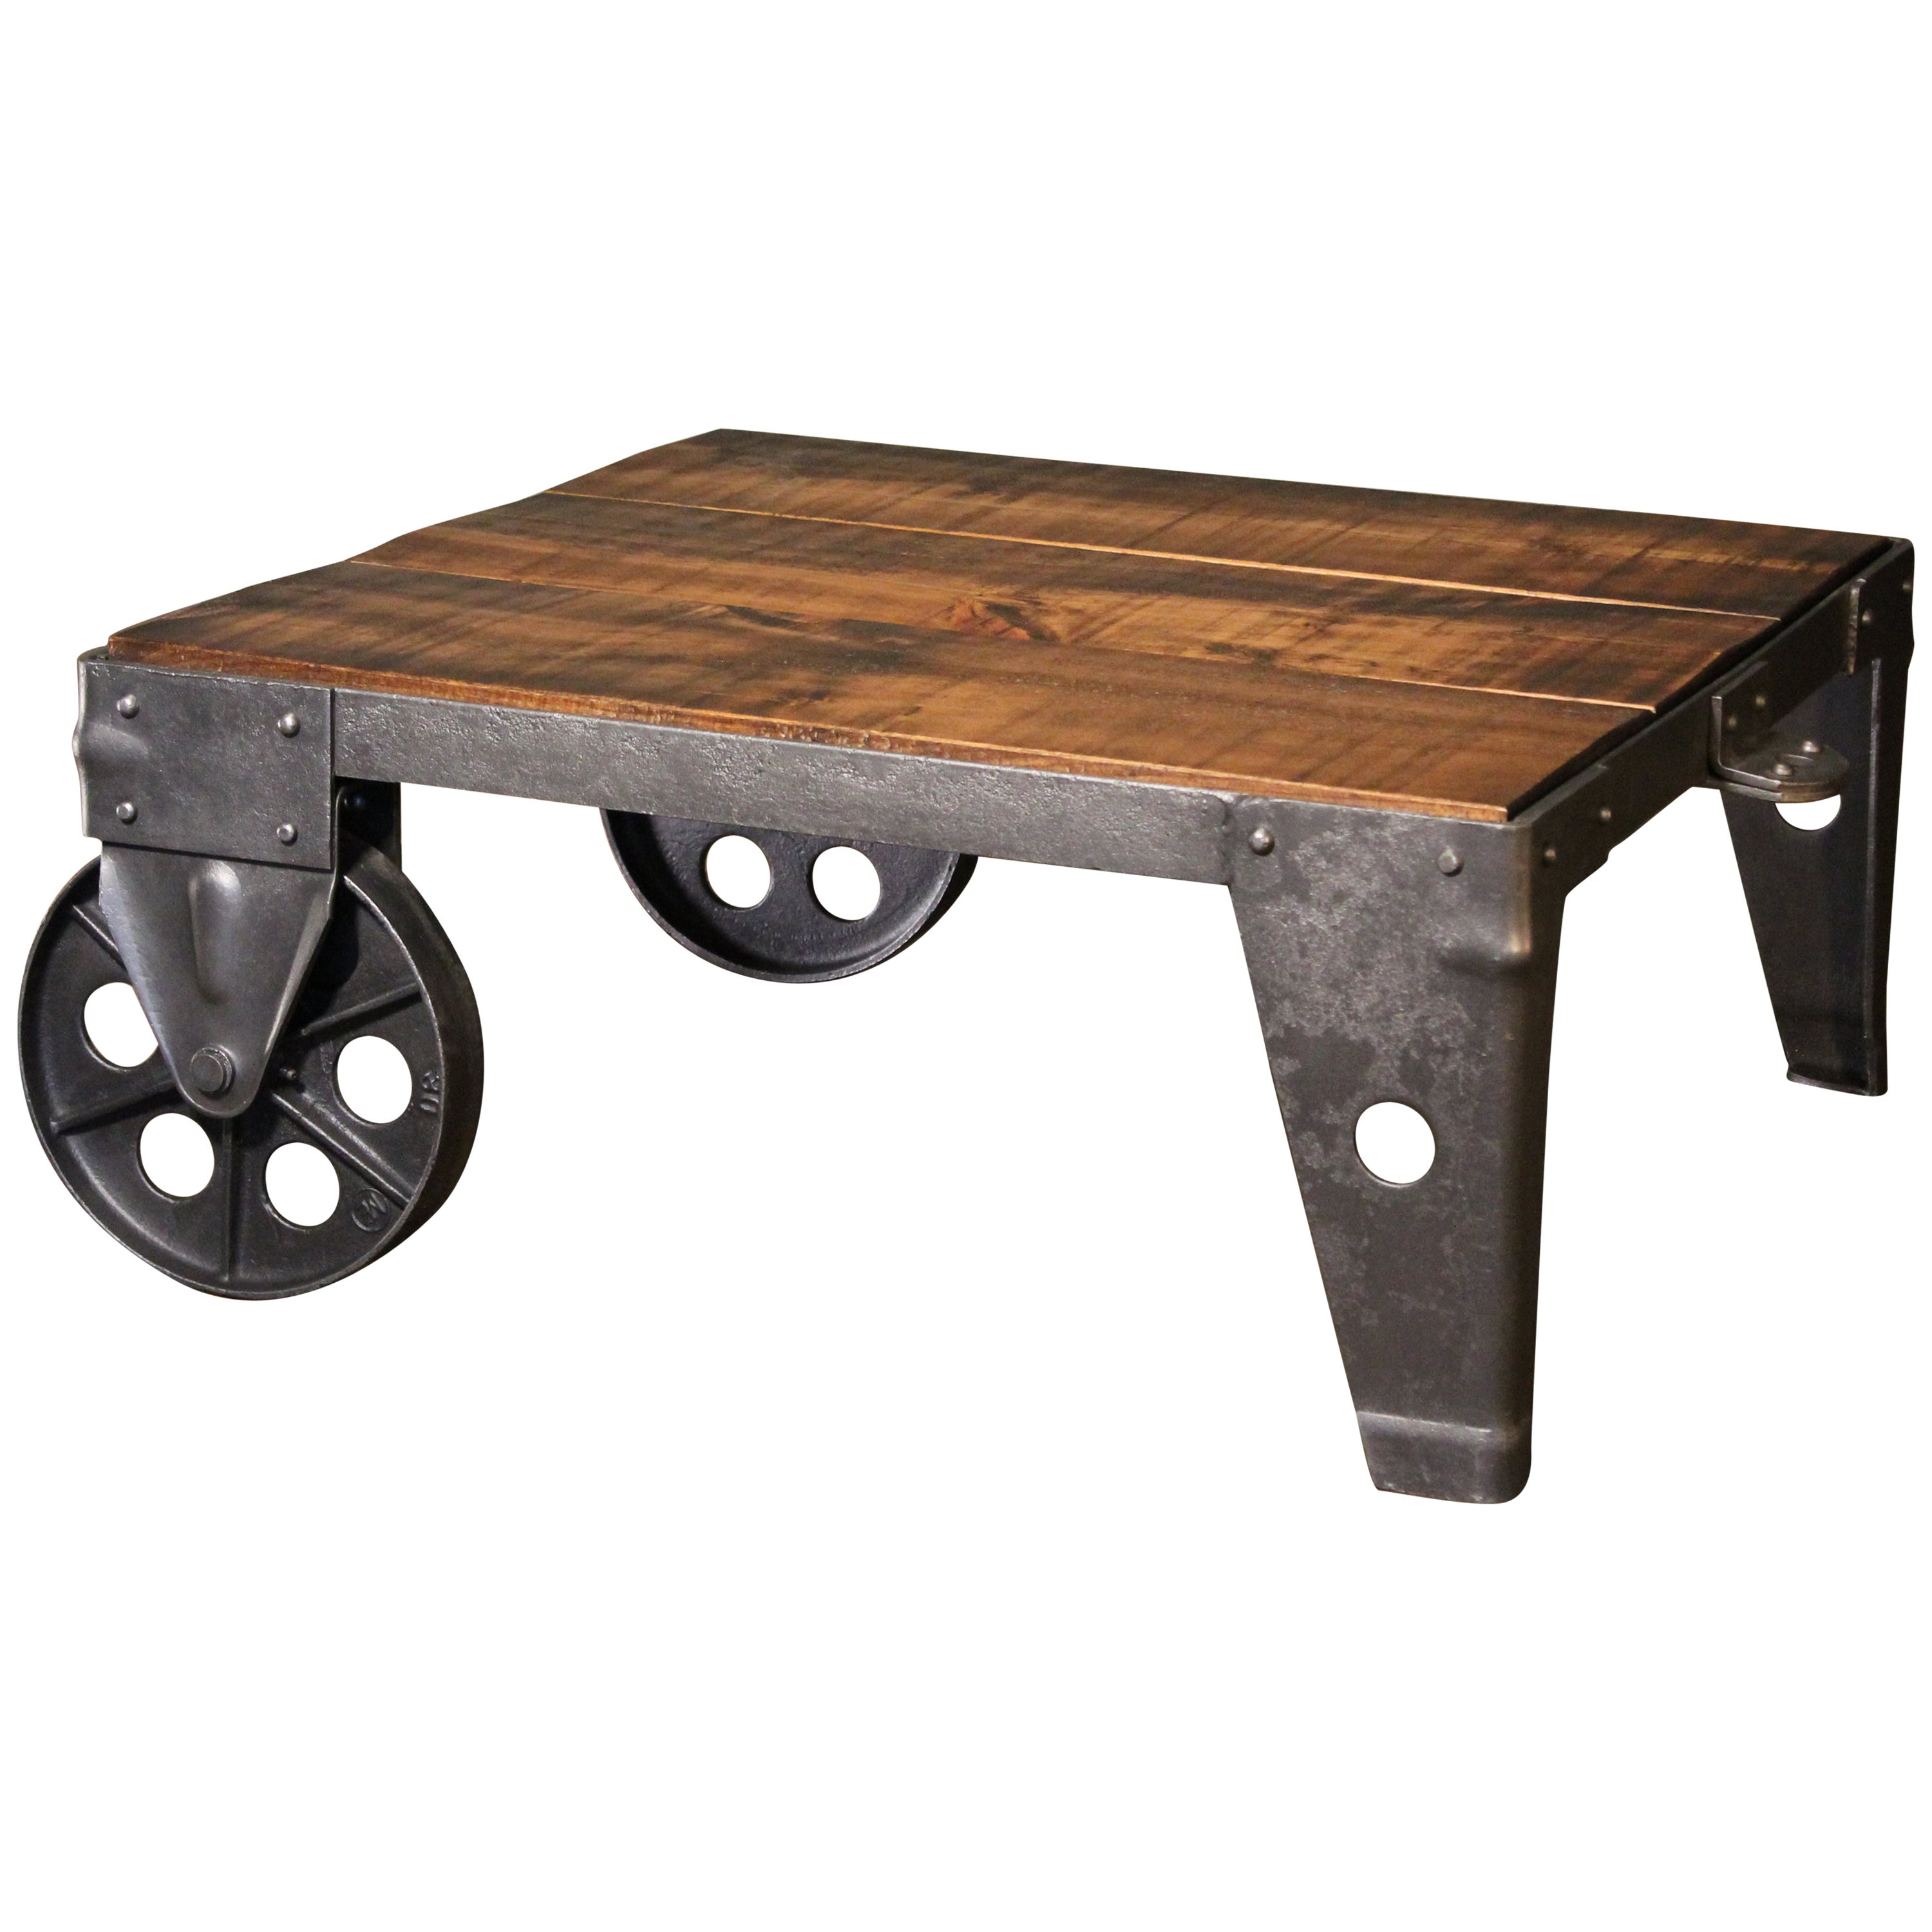 Iron Shop Authentic Vintage Industrial Cart Coffee Table Factory Shop Wood Steel And Iron